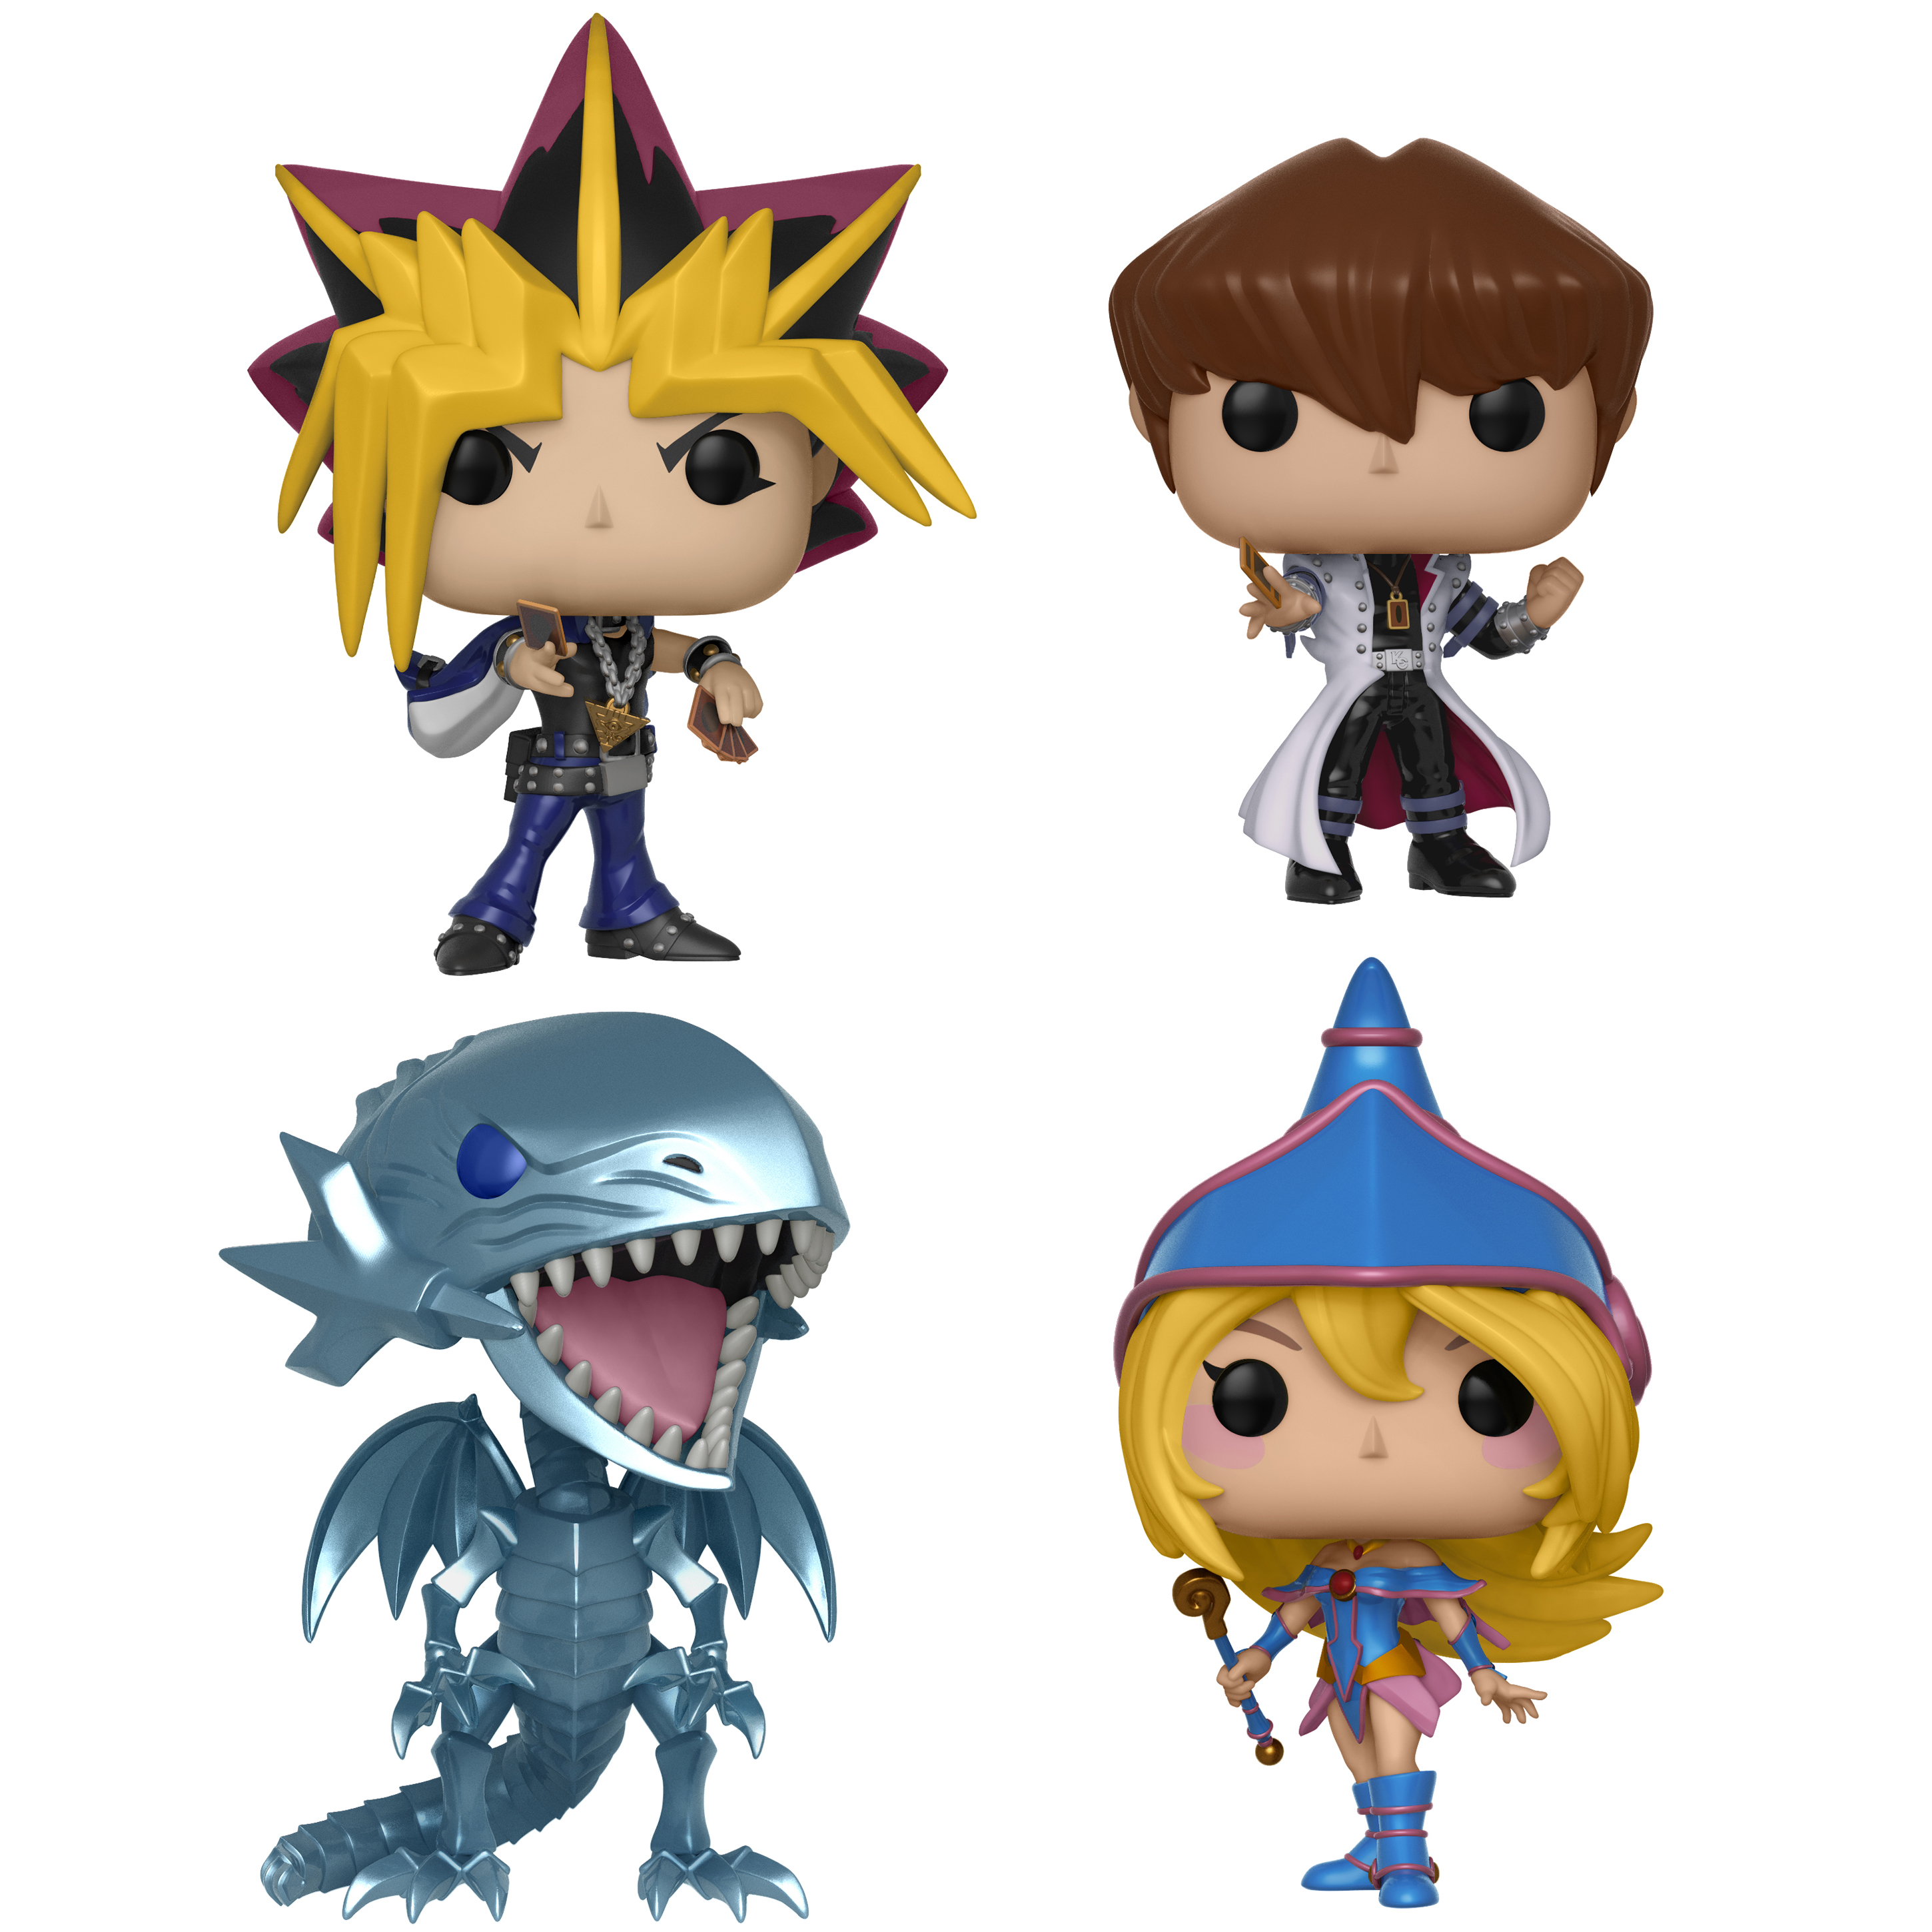 Funko POP! Animation Yu-Gi-Oh! Series 1 Collectors Set - Yami Yugi, Seto Kaiba, Blue Eyes White Drago, Dark Magician Girl